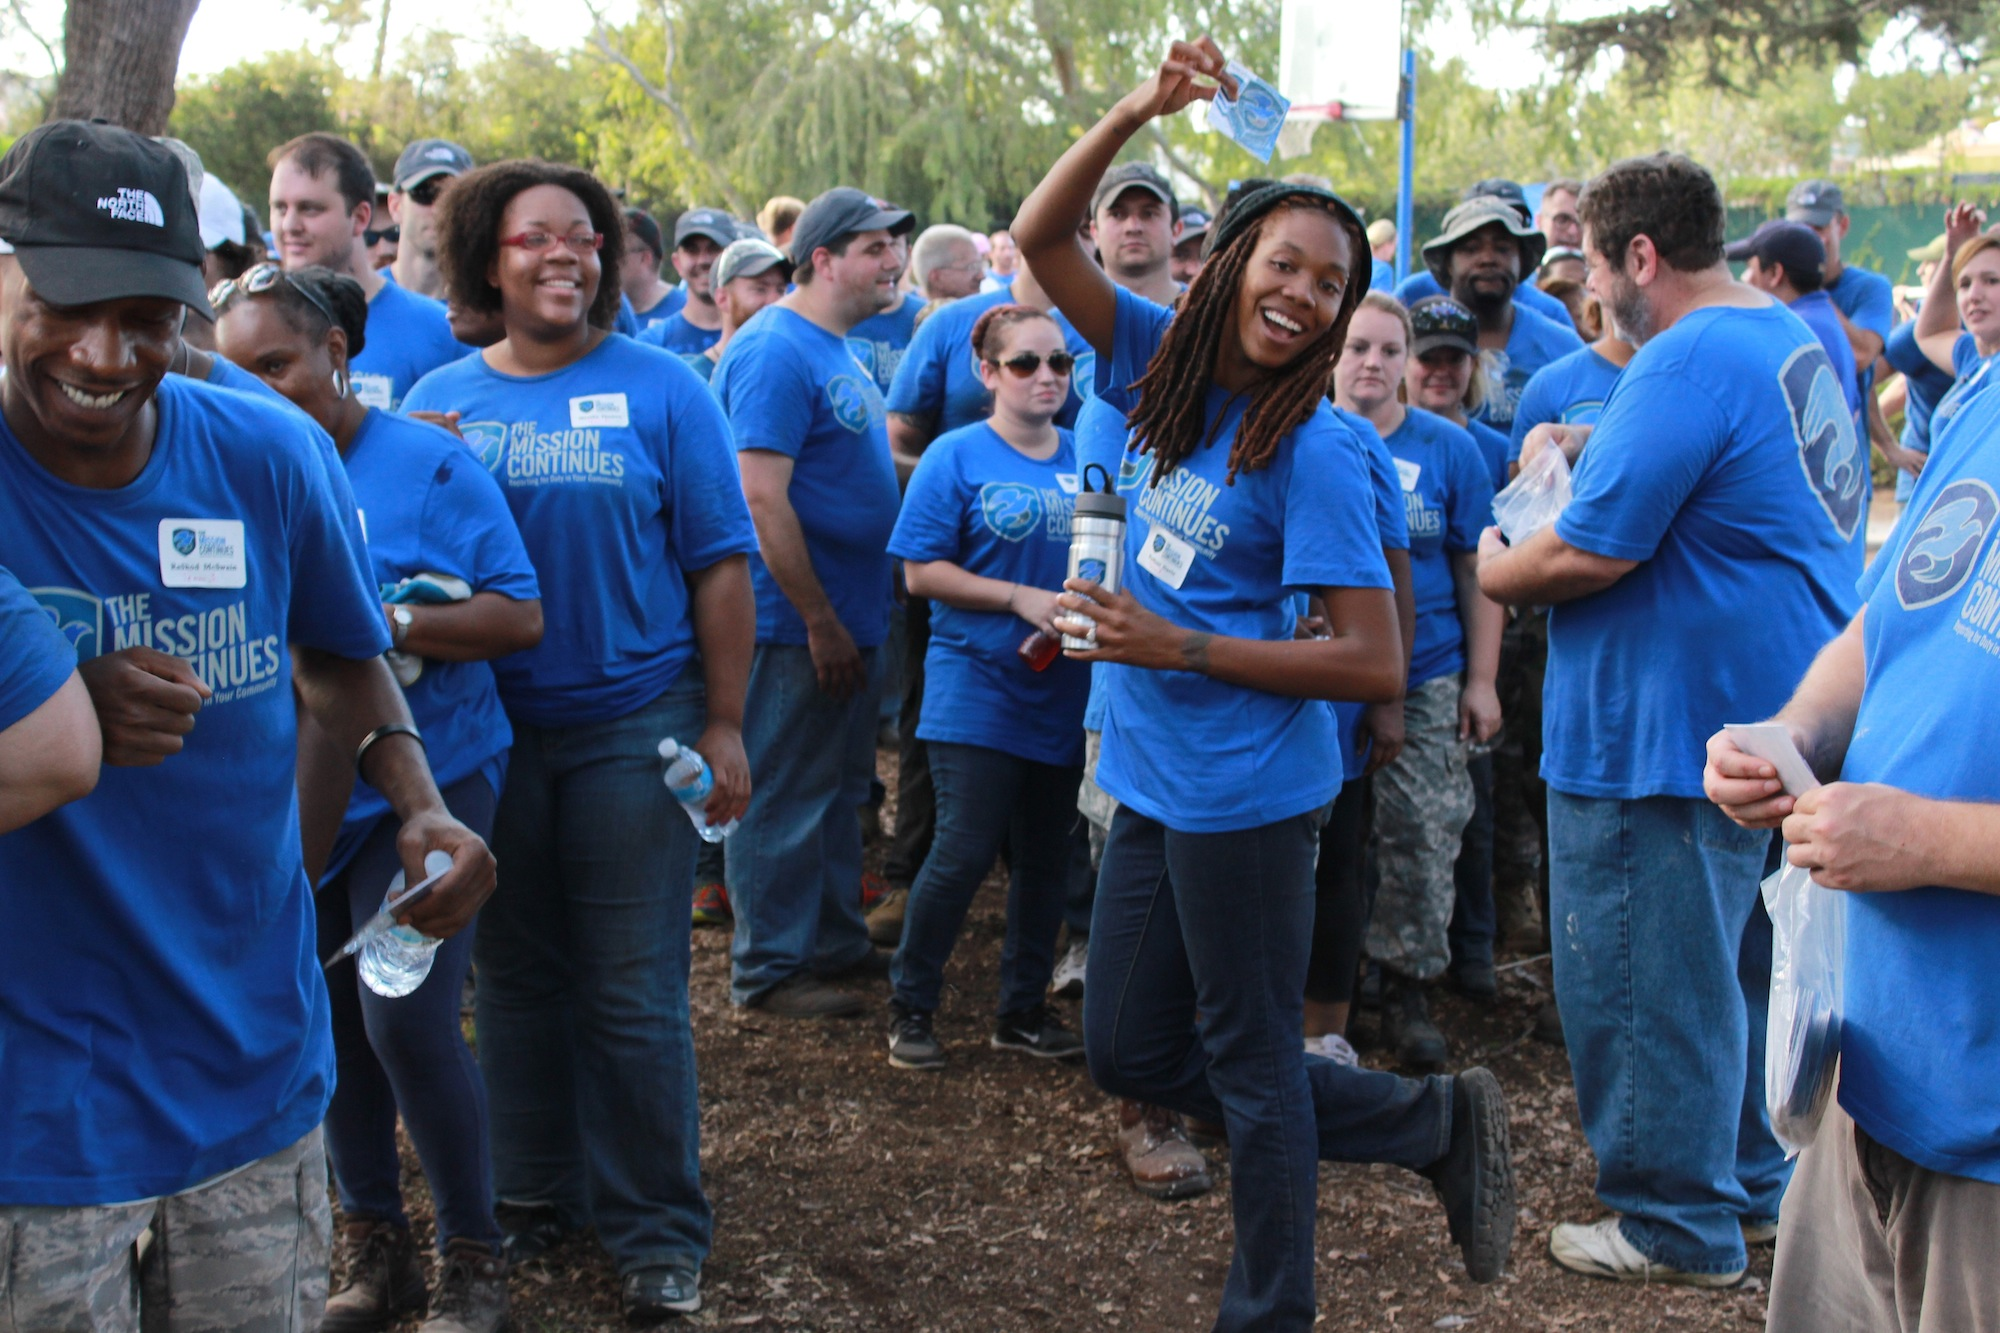 A Great Place to Work and Serve: The Mission Continues Ranks #15 on 2015 NonProfit Times Best Places to Work